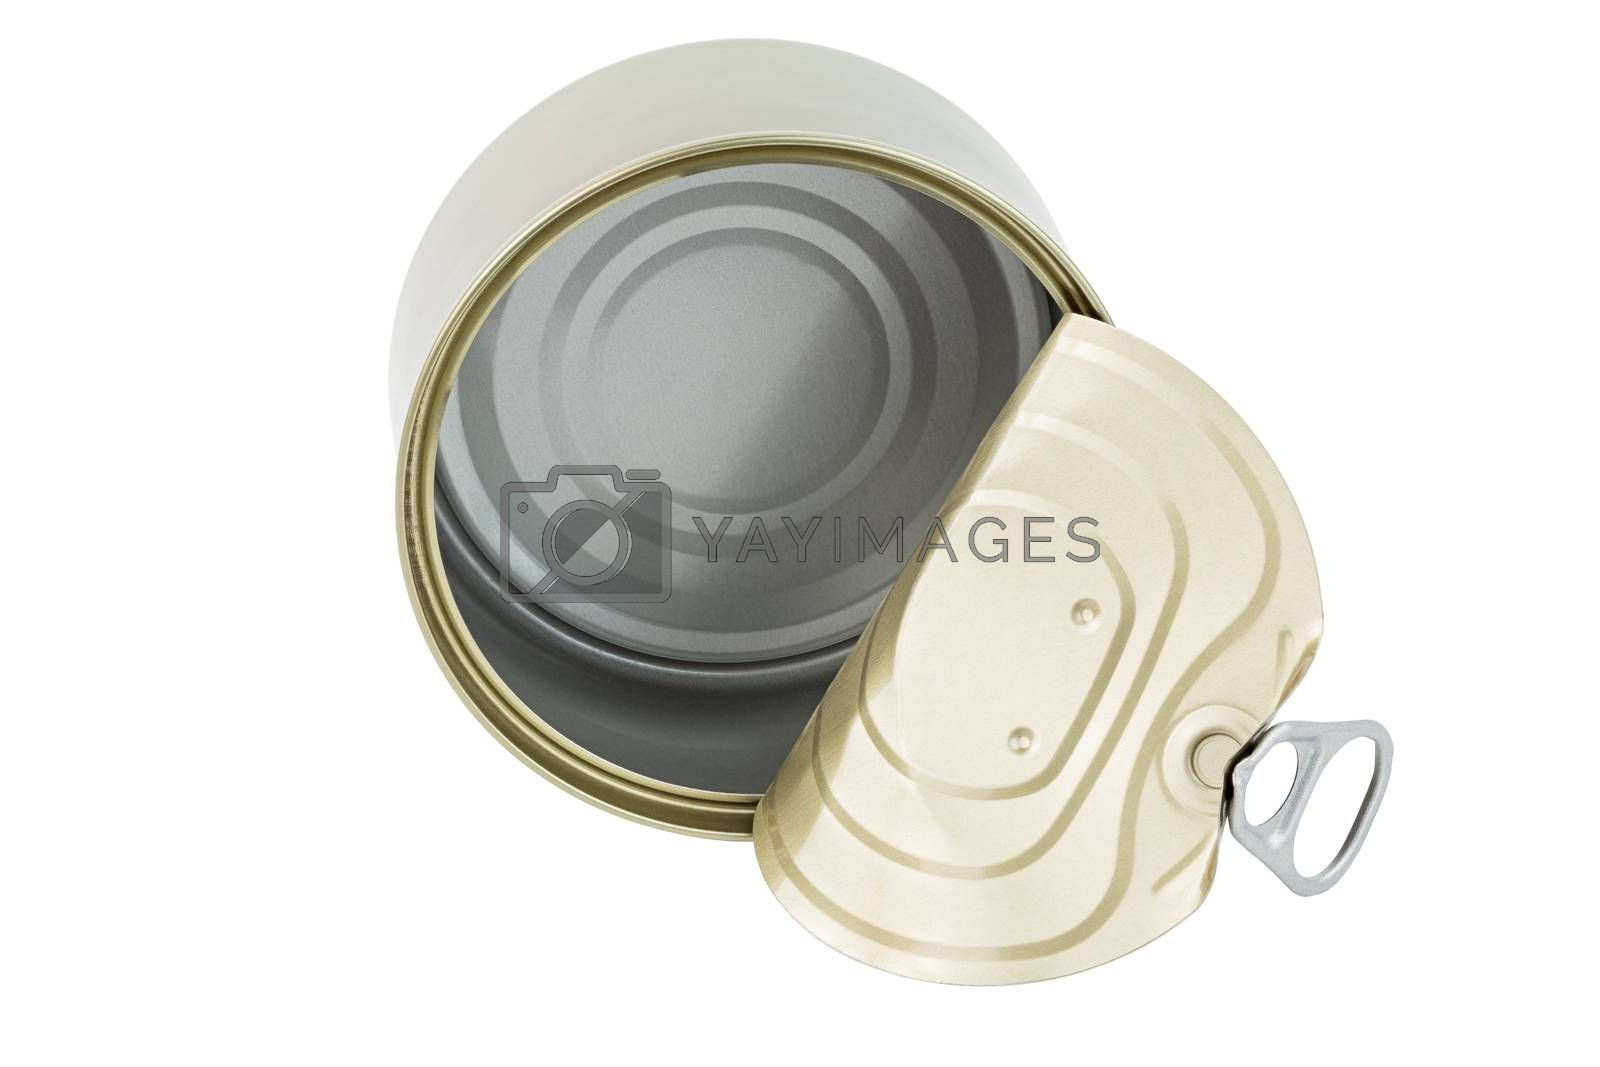 opened clean tin can with pull tab ring, bended lid and empty - isolated on white background, top-down view.